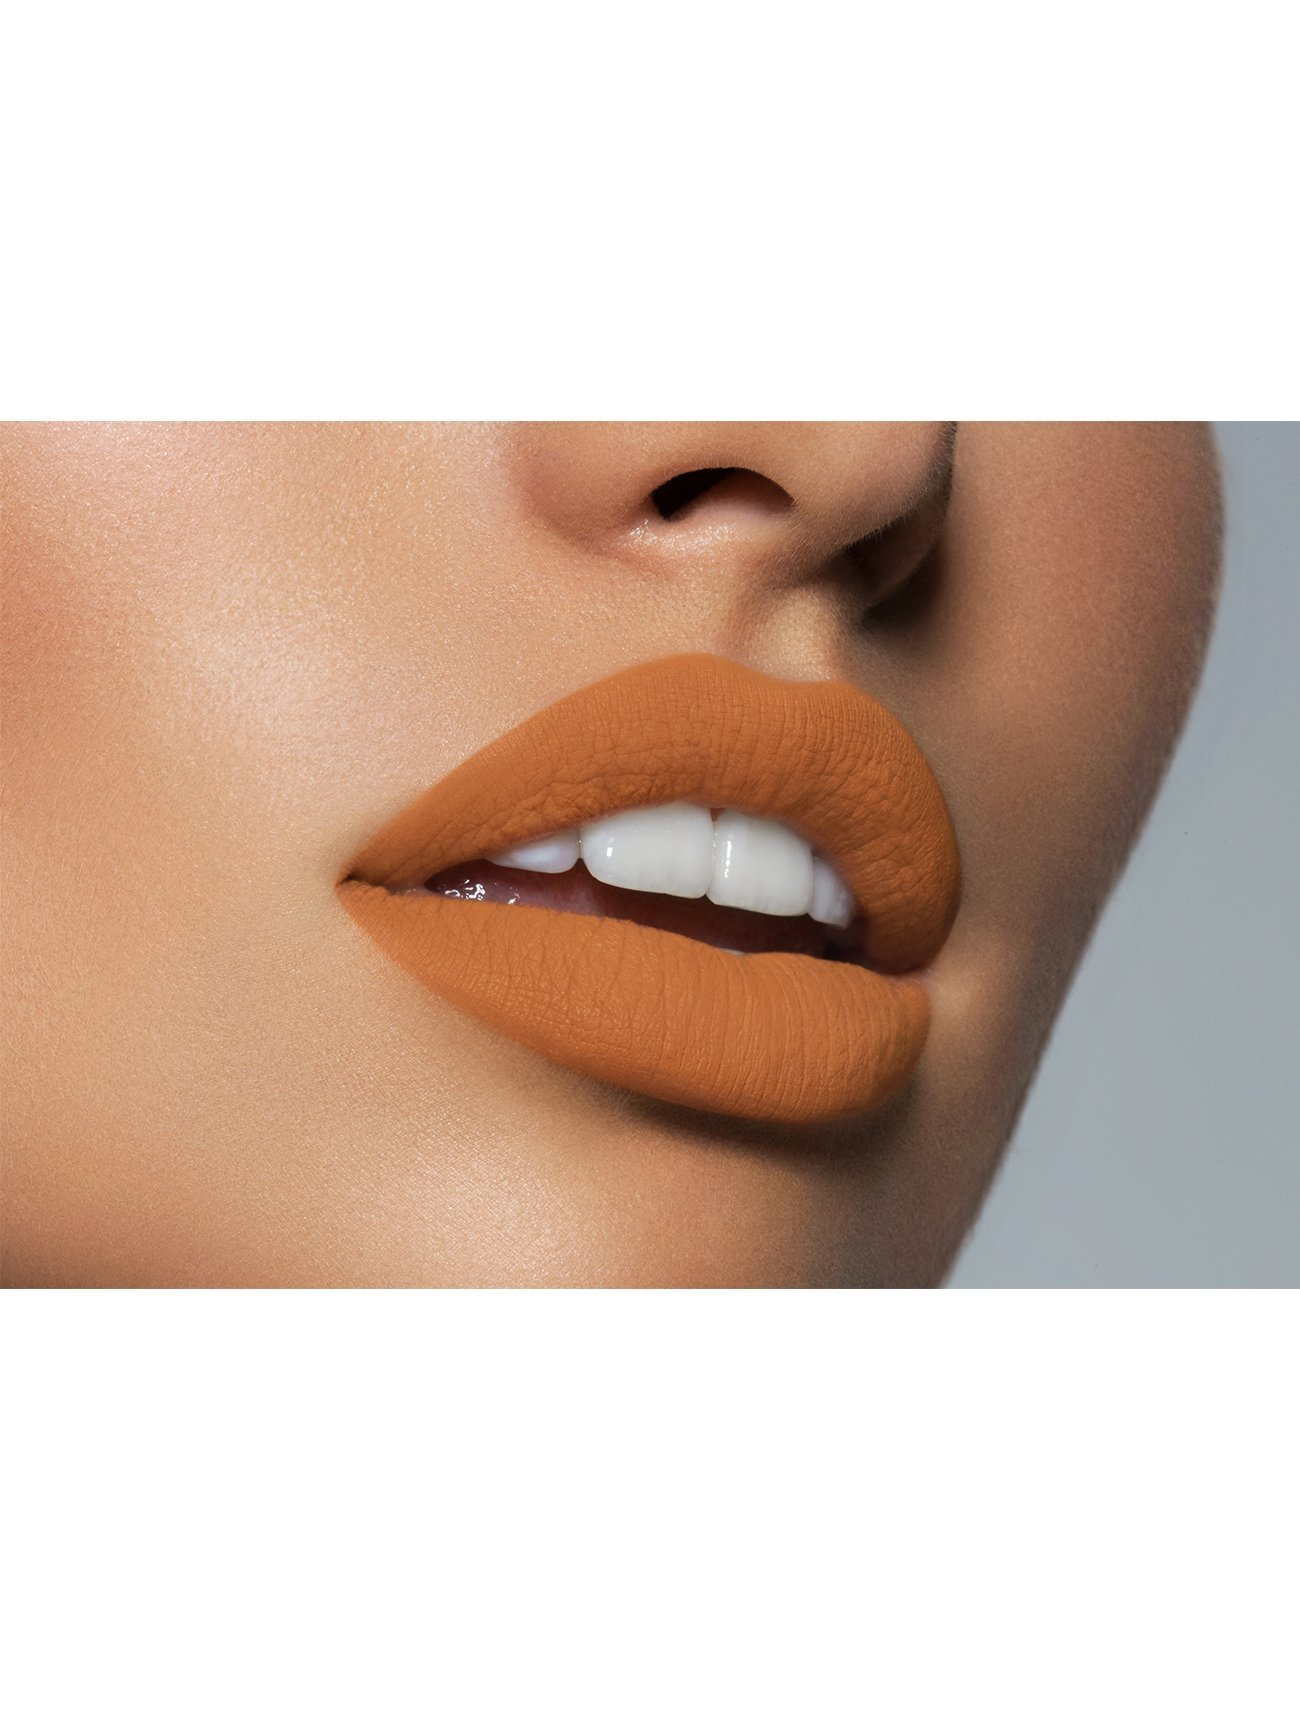 BUTTERNUT | LIP KIT